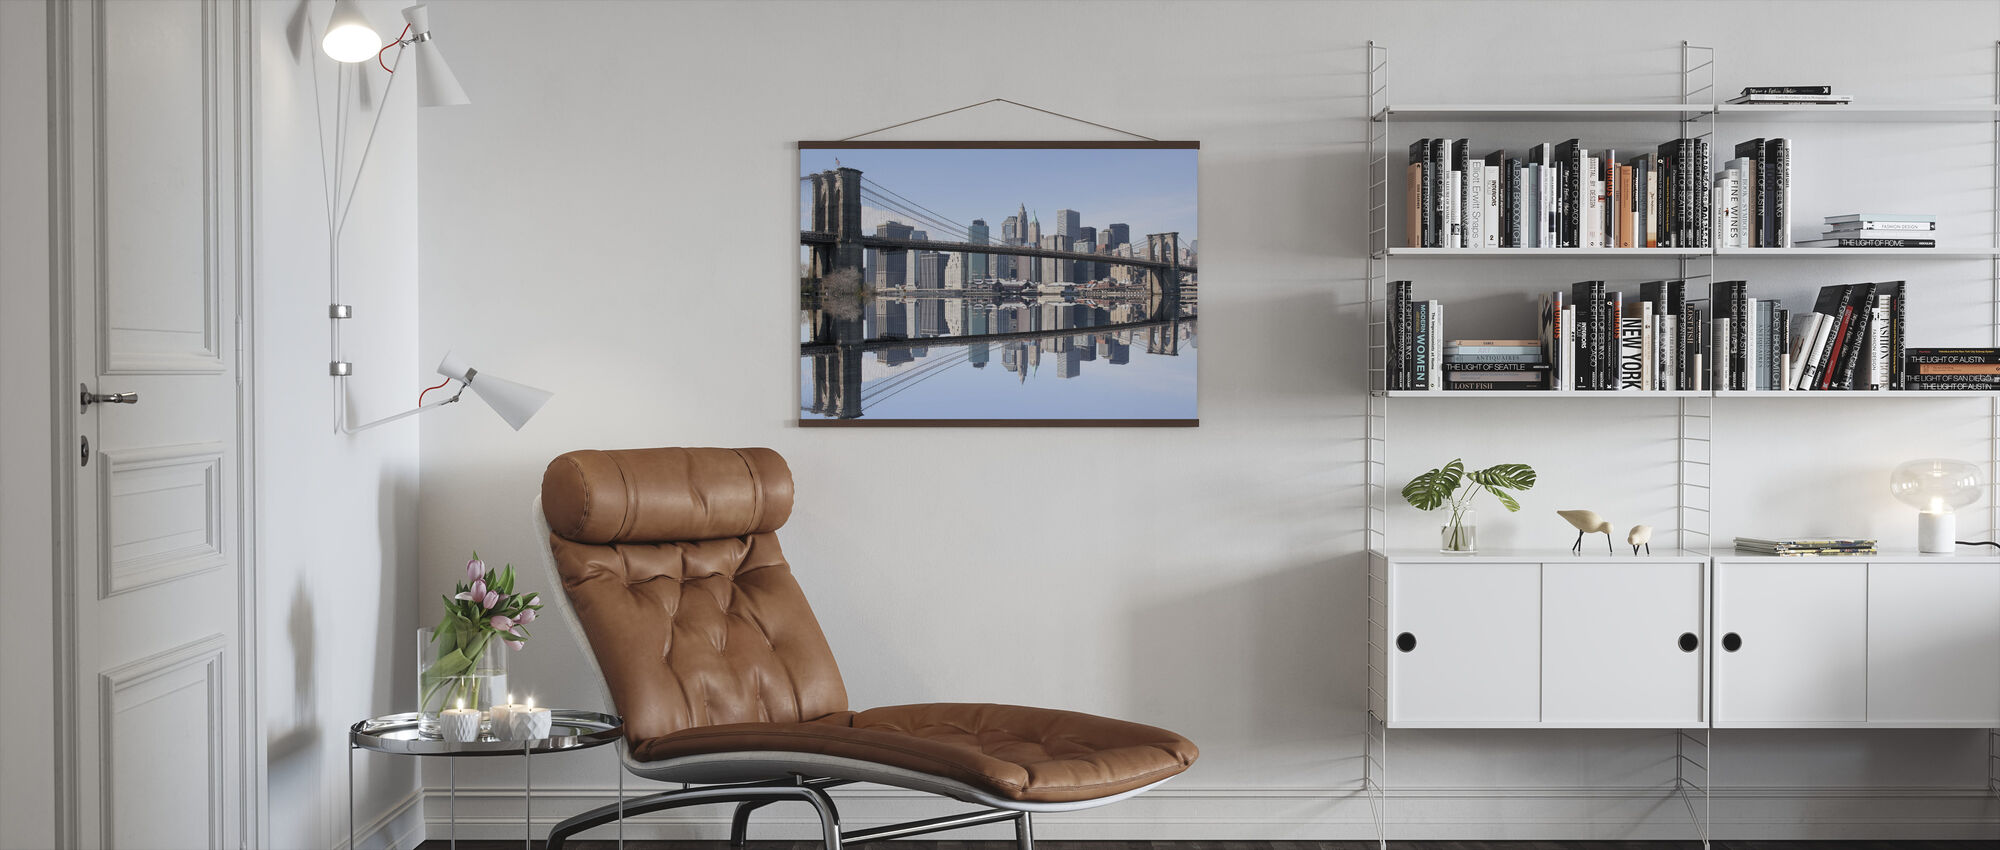 Brooklyn Bridge Clear Blue Day - Poster - Living Room